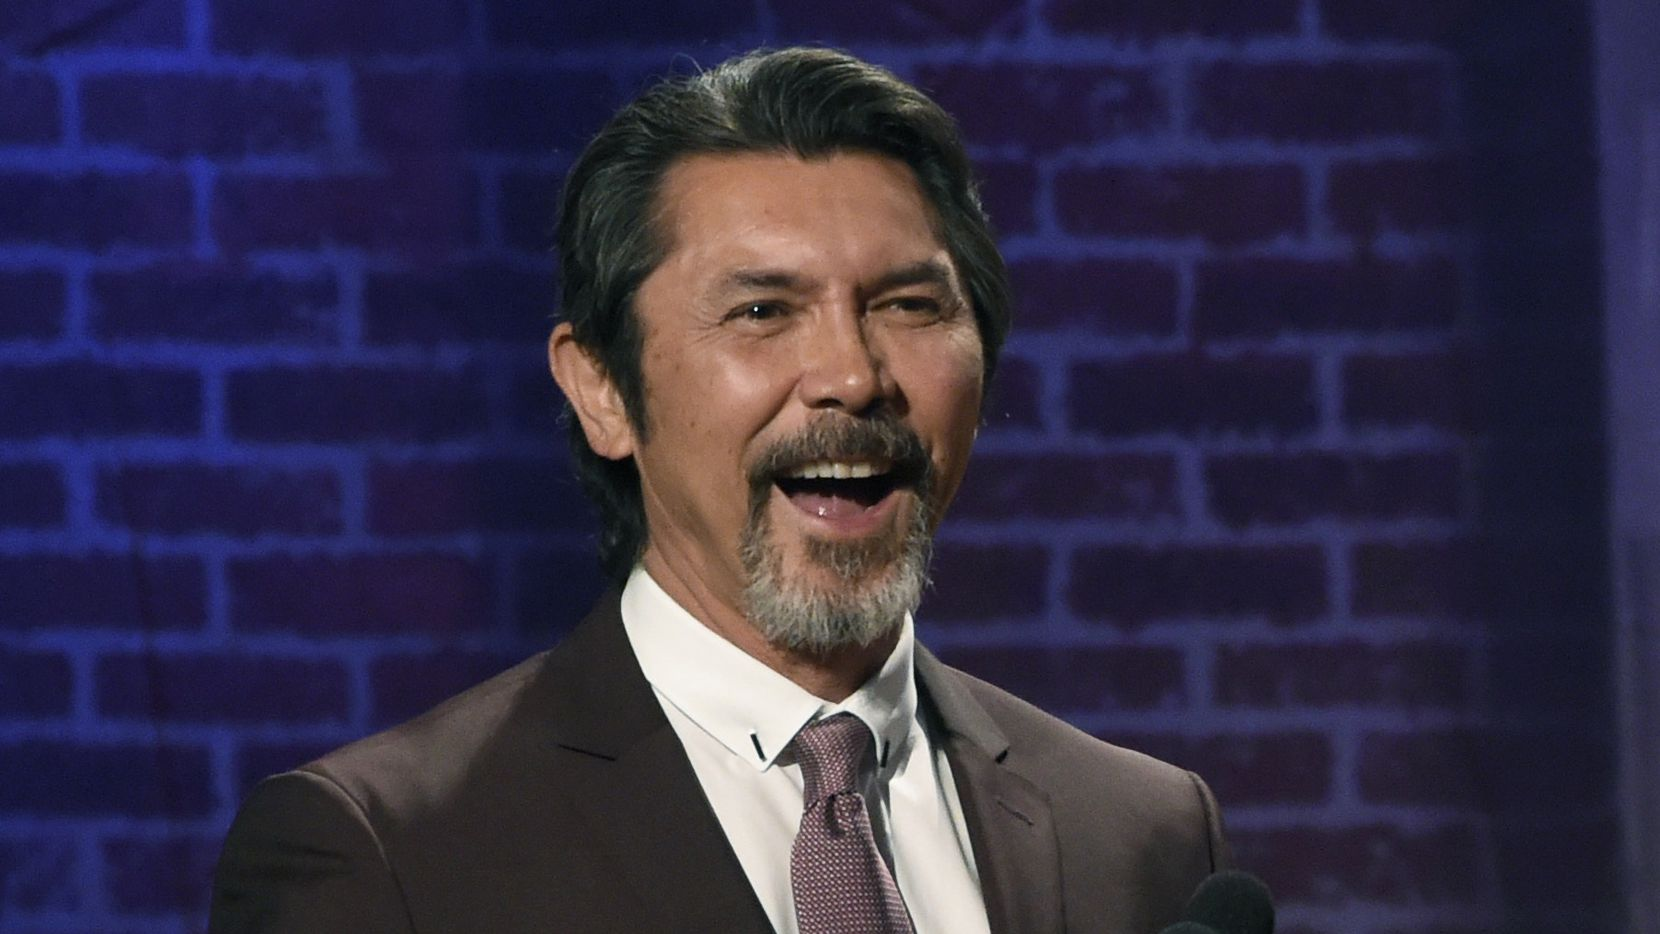 Lou Diamond Phillips will appear at the University of Texas at Arlington on Thursday. (Chris Pizzello/Invision)